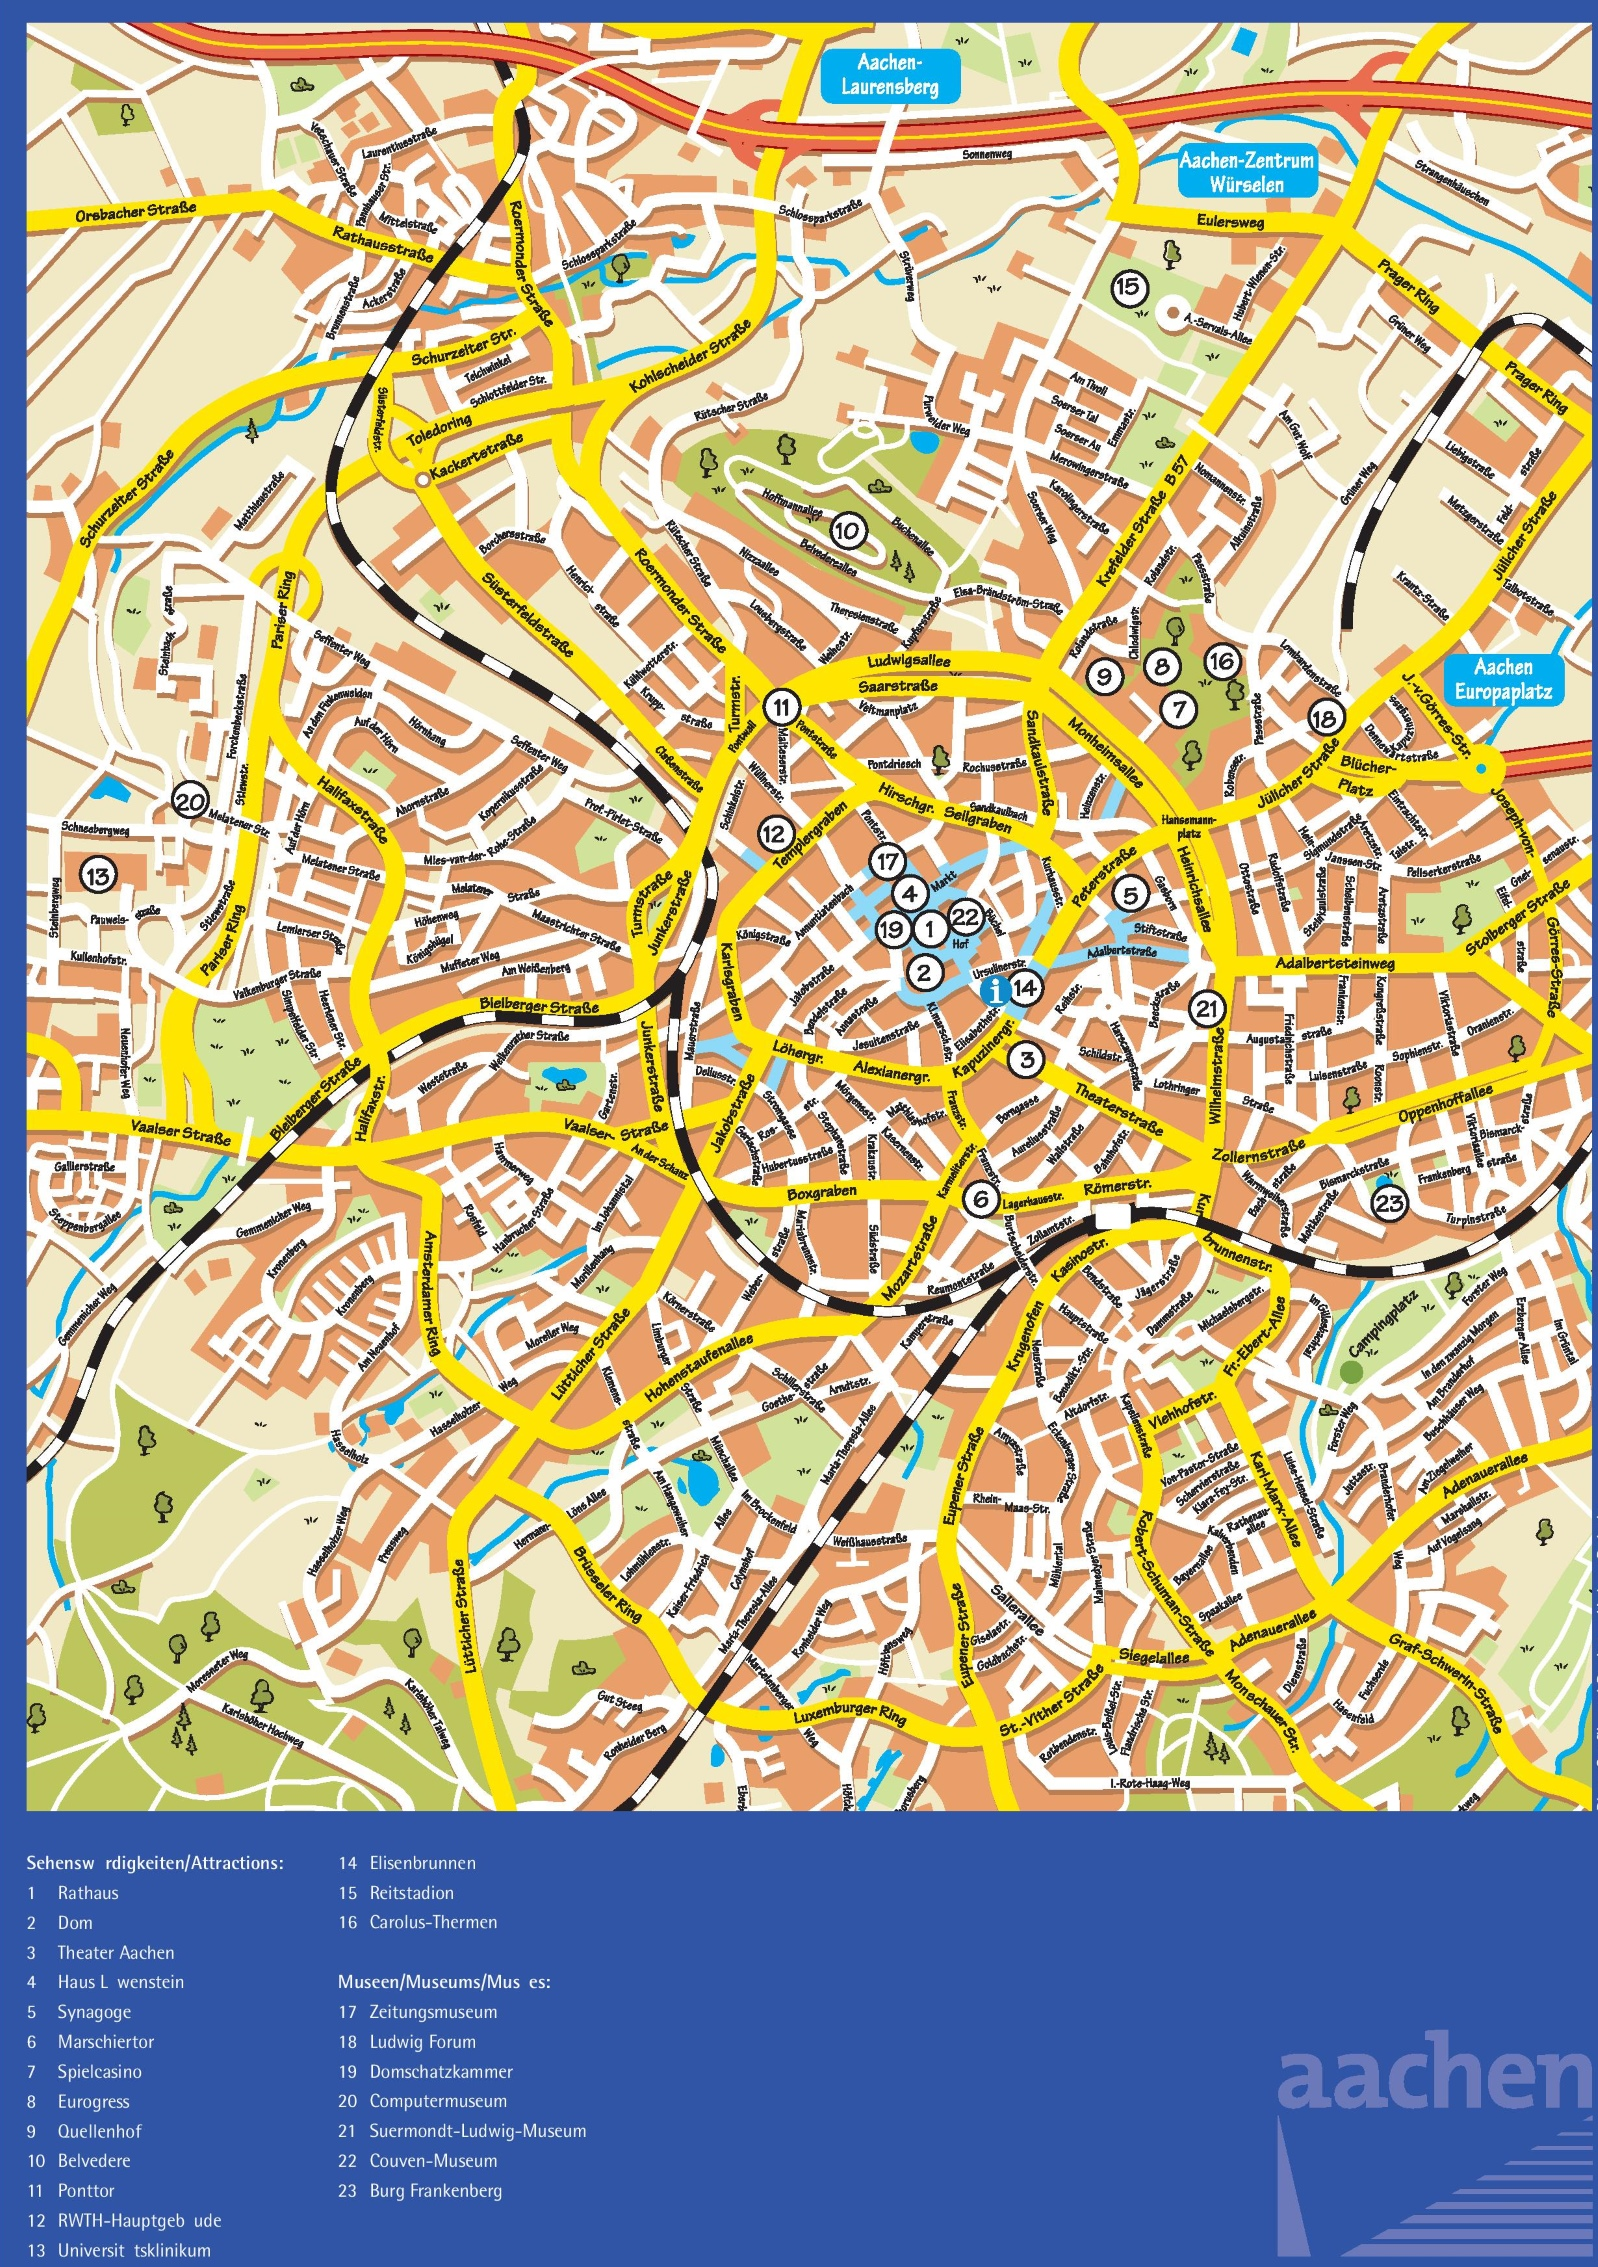 Aachen sightseeing map